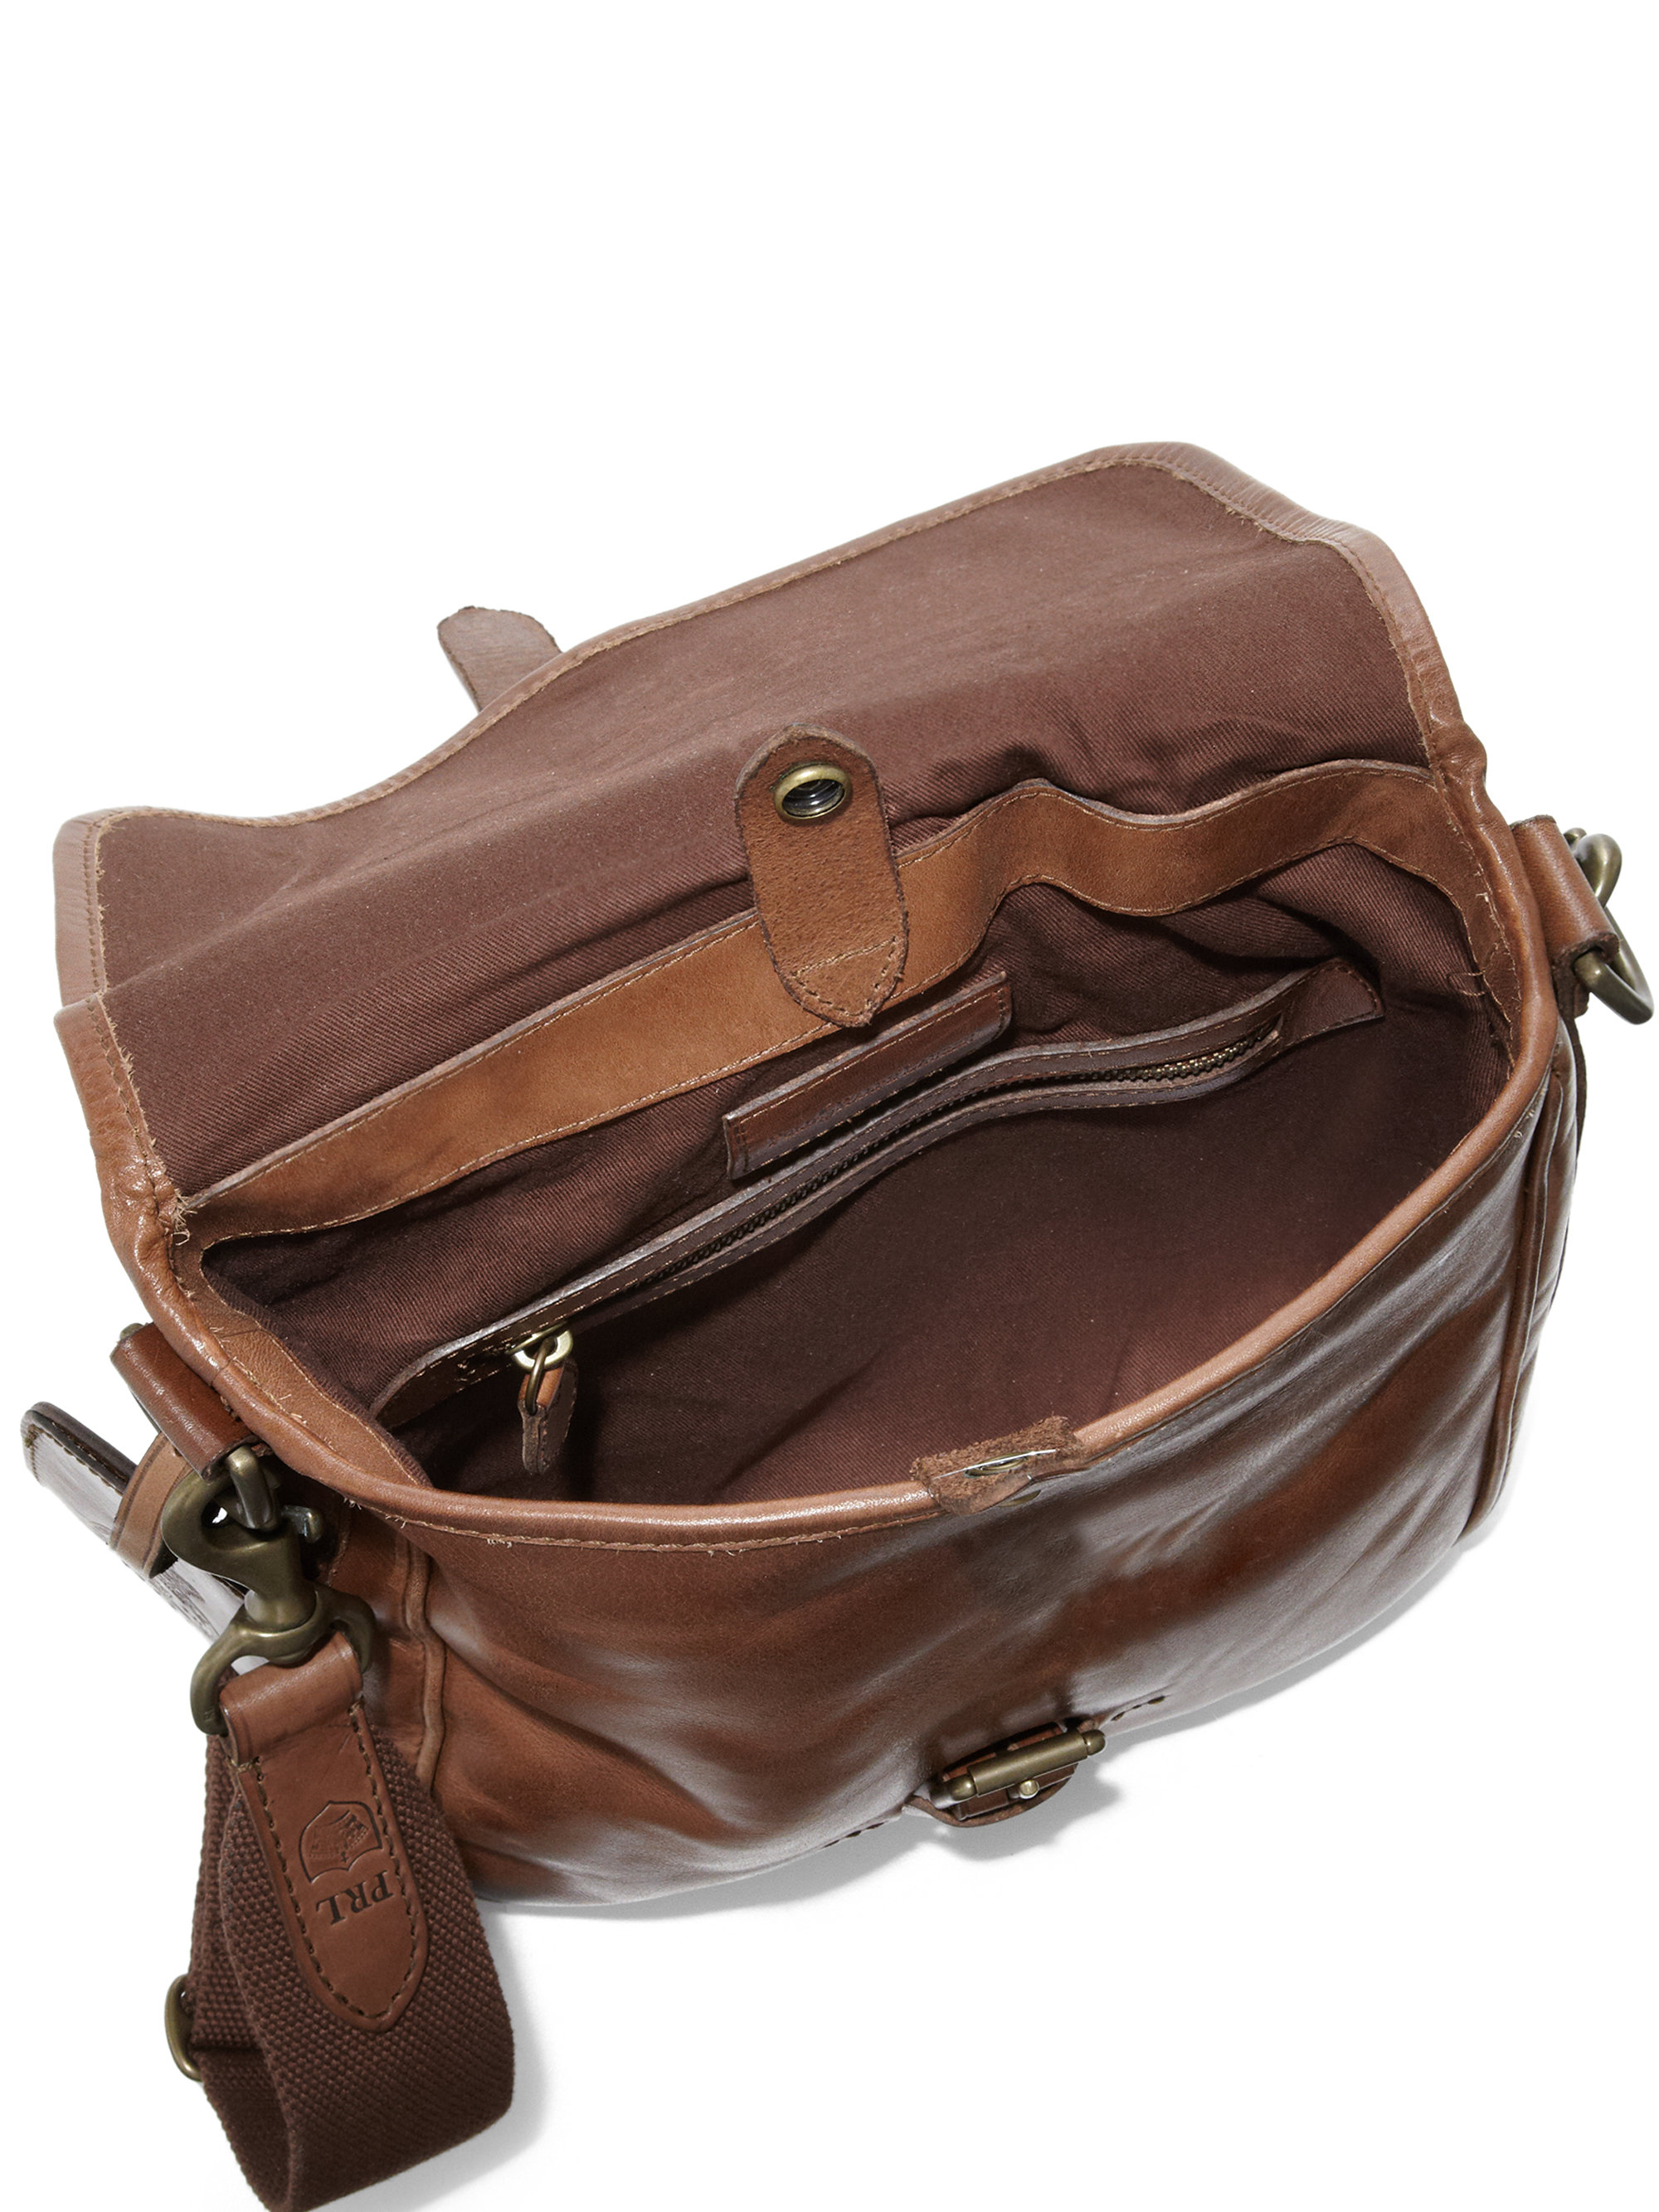 19e64cf4dff0 Lyst - Polo Ralph Lauren Leather Camera Bag in Brown for Men